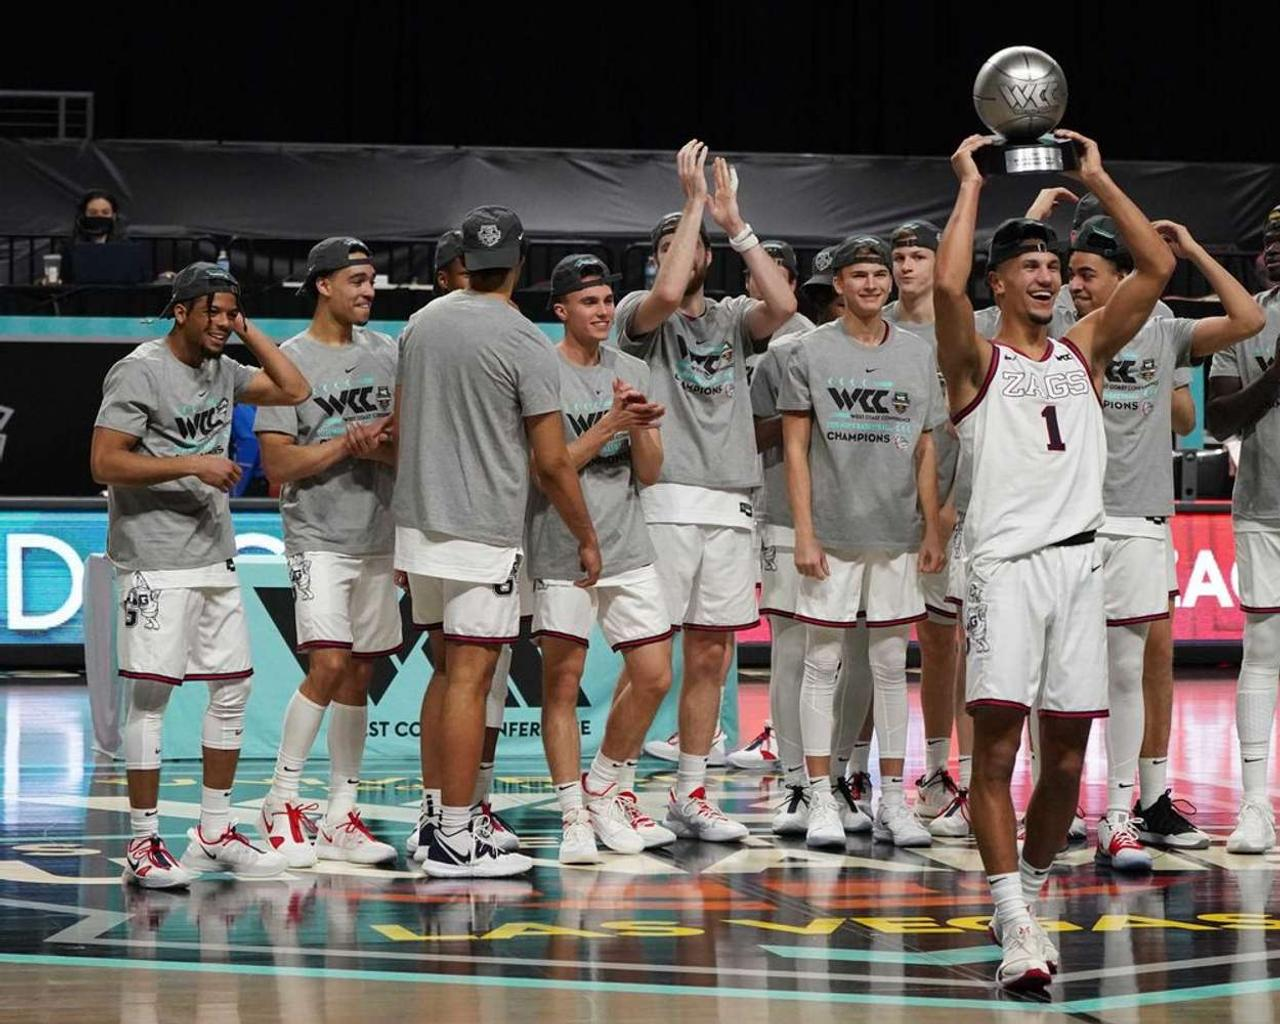 Gonzaga learns the harsh reality of the NCAA tournament: there can be only one champion.